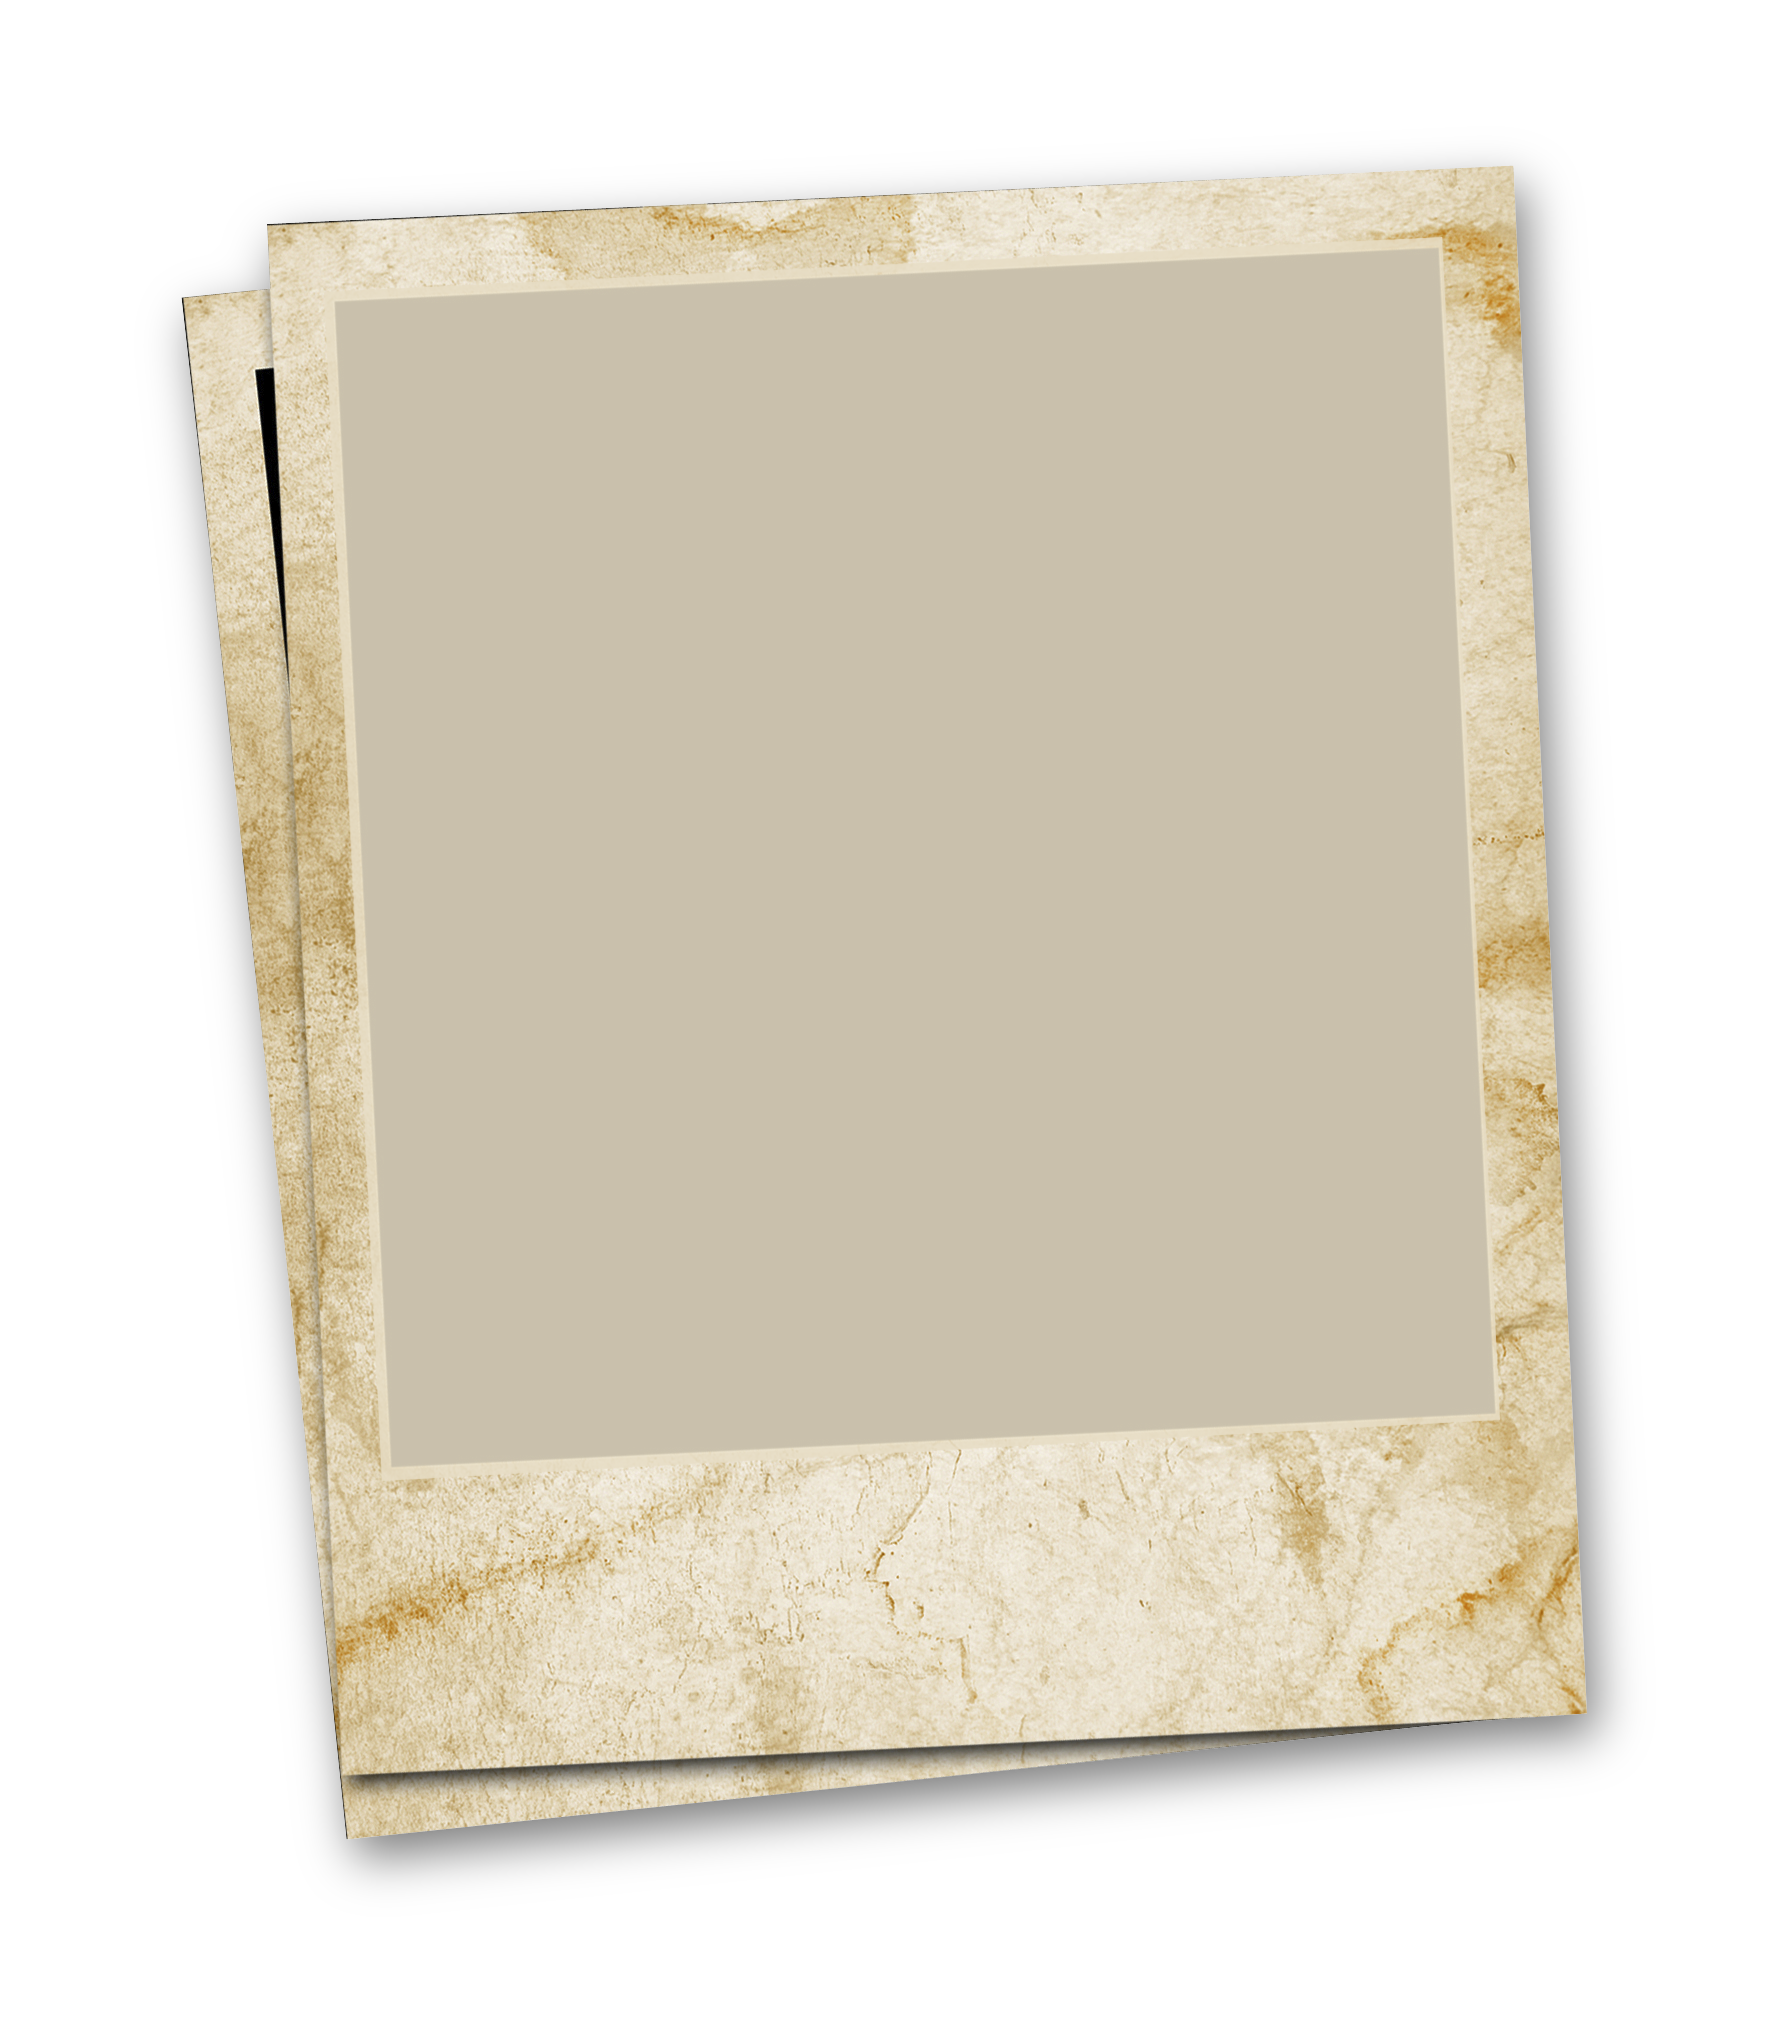 Polaroid picture clipart old. Plywood square rectangle transprent